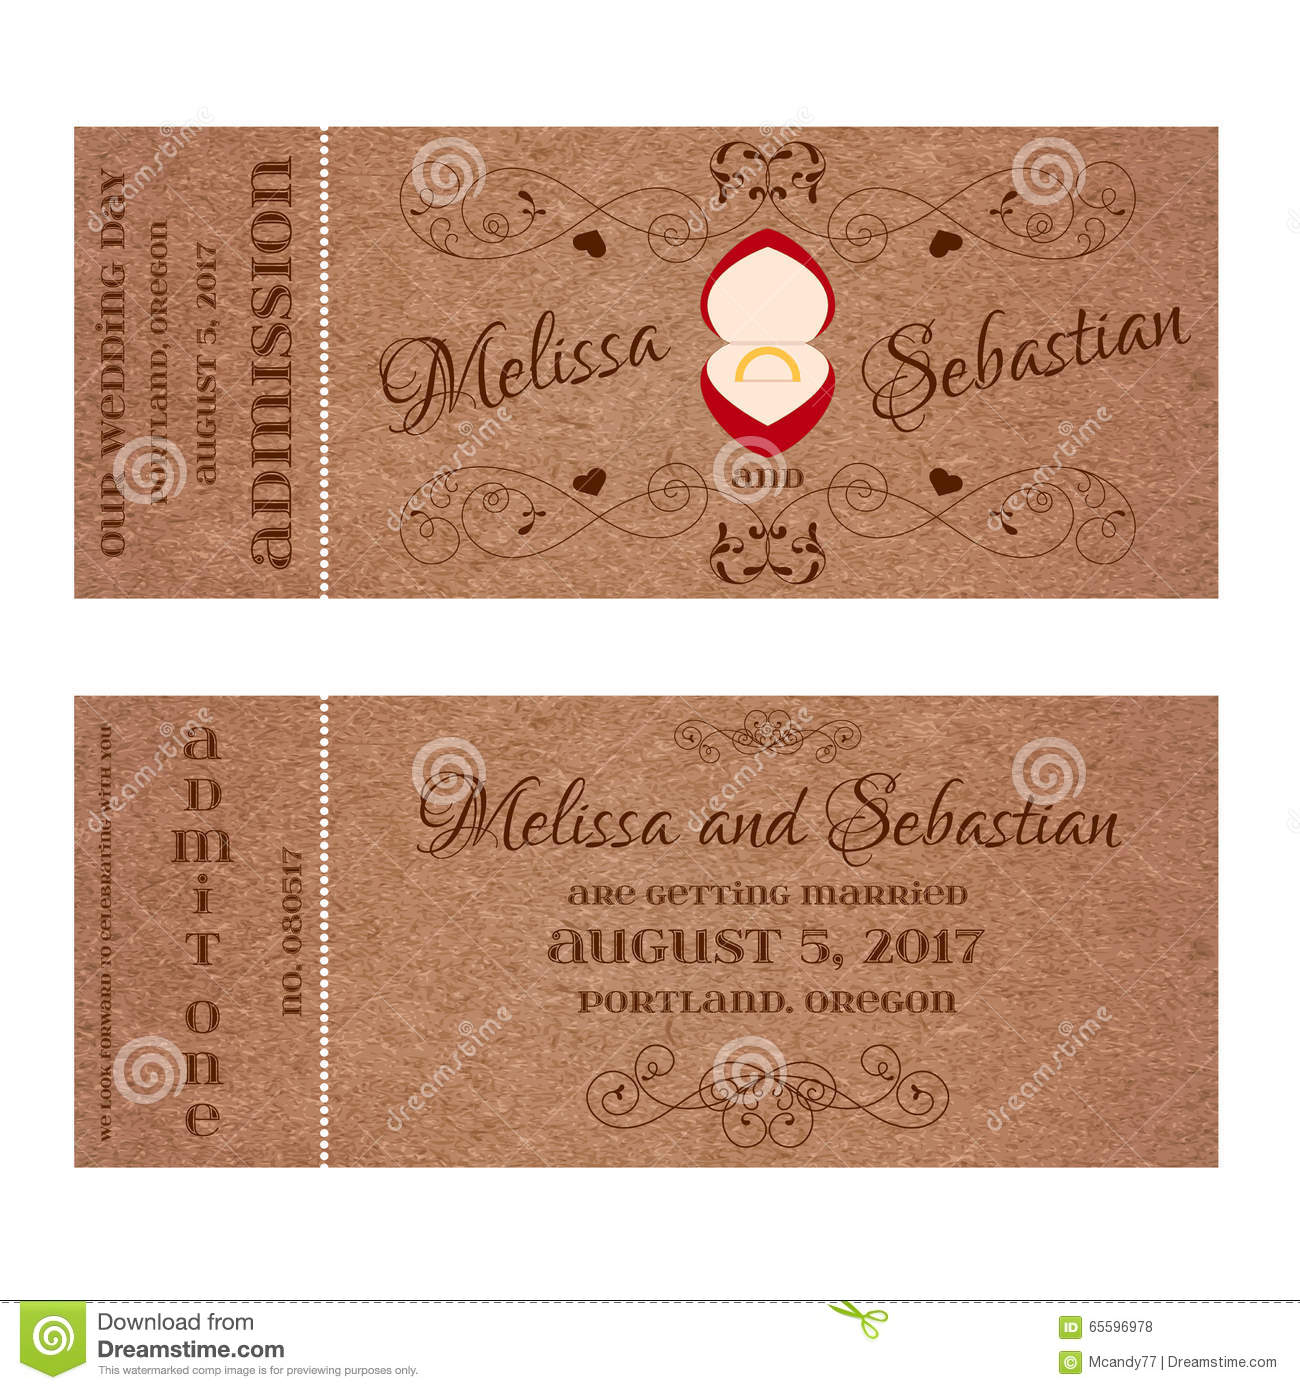 Golden Save The Date For Wedding Invitation Wedding: Ticket For Wedding Invitation With Wedding Golden Ring In